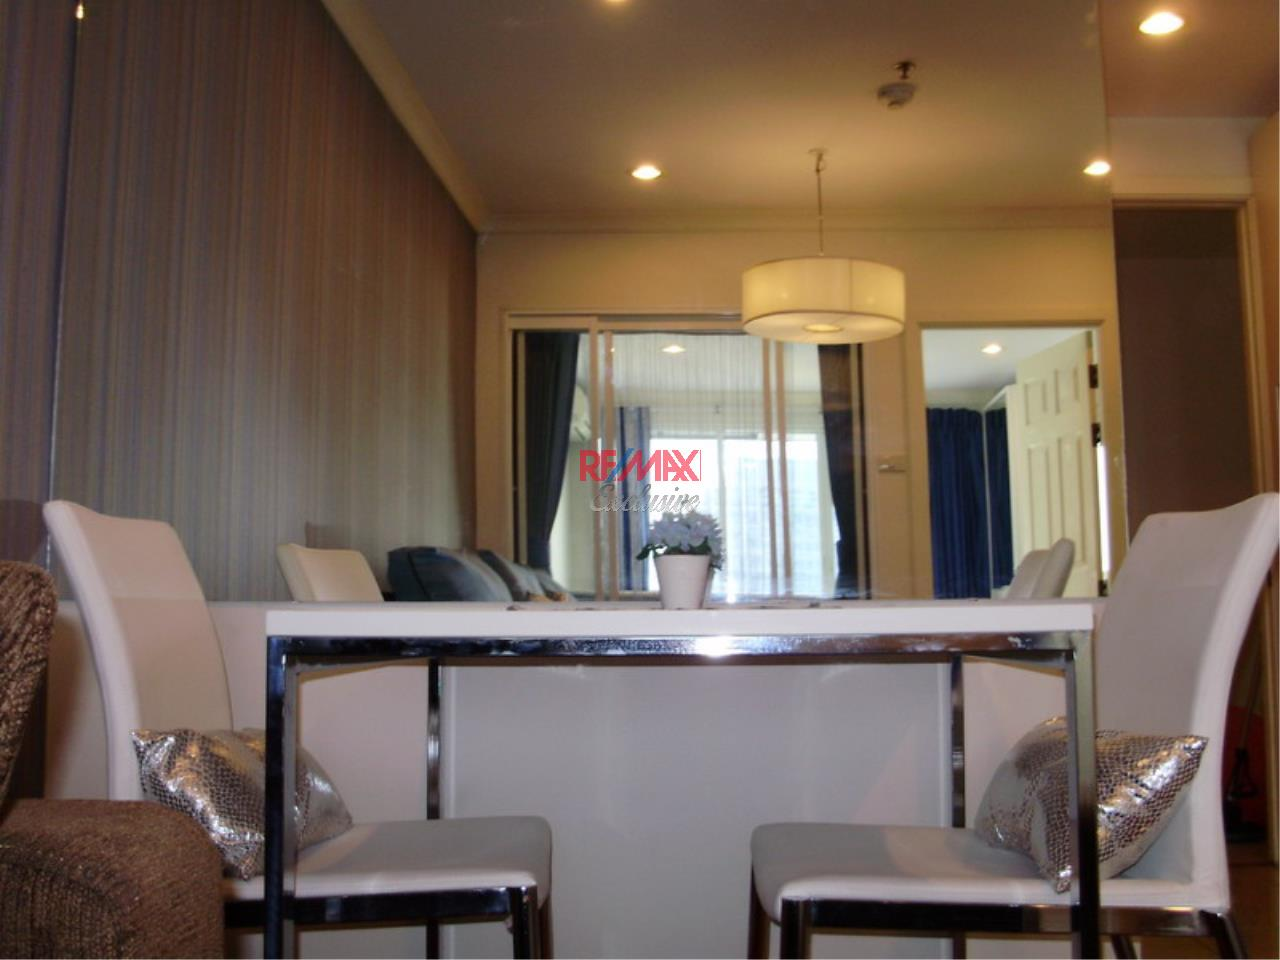 RE/MAX Exclusive Agency's Grand Park View 1 Bedroom nice Decorated for sale 3700000 2